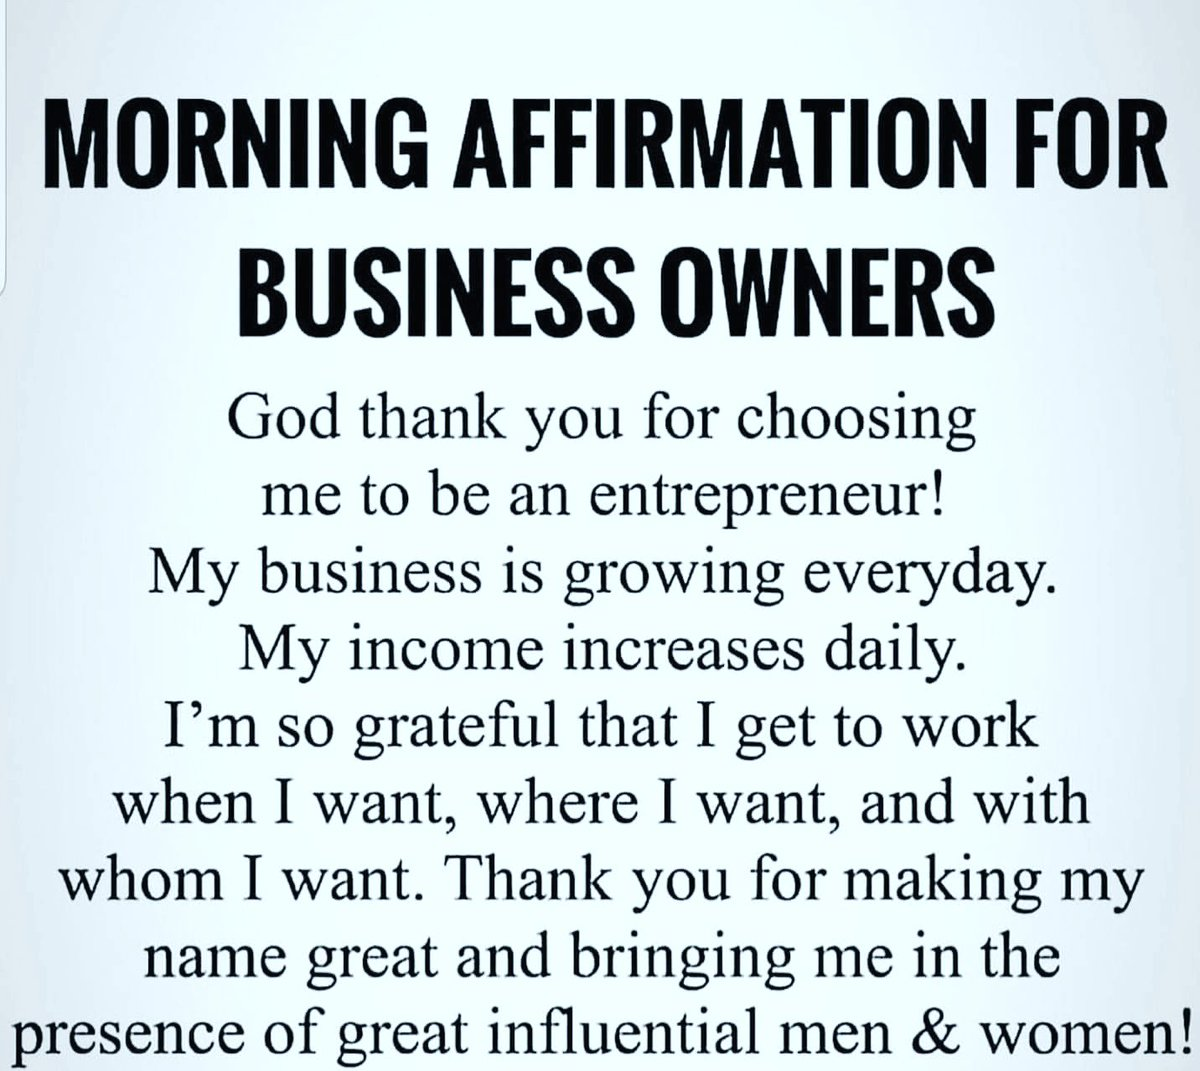 morning #affrimations #business #owners #entrepreneur #grow #everyday #income #increase #daily #greatful #work #when #where #whom #want #name #great #bring #presence #influential #men #women